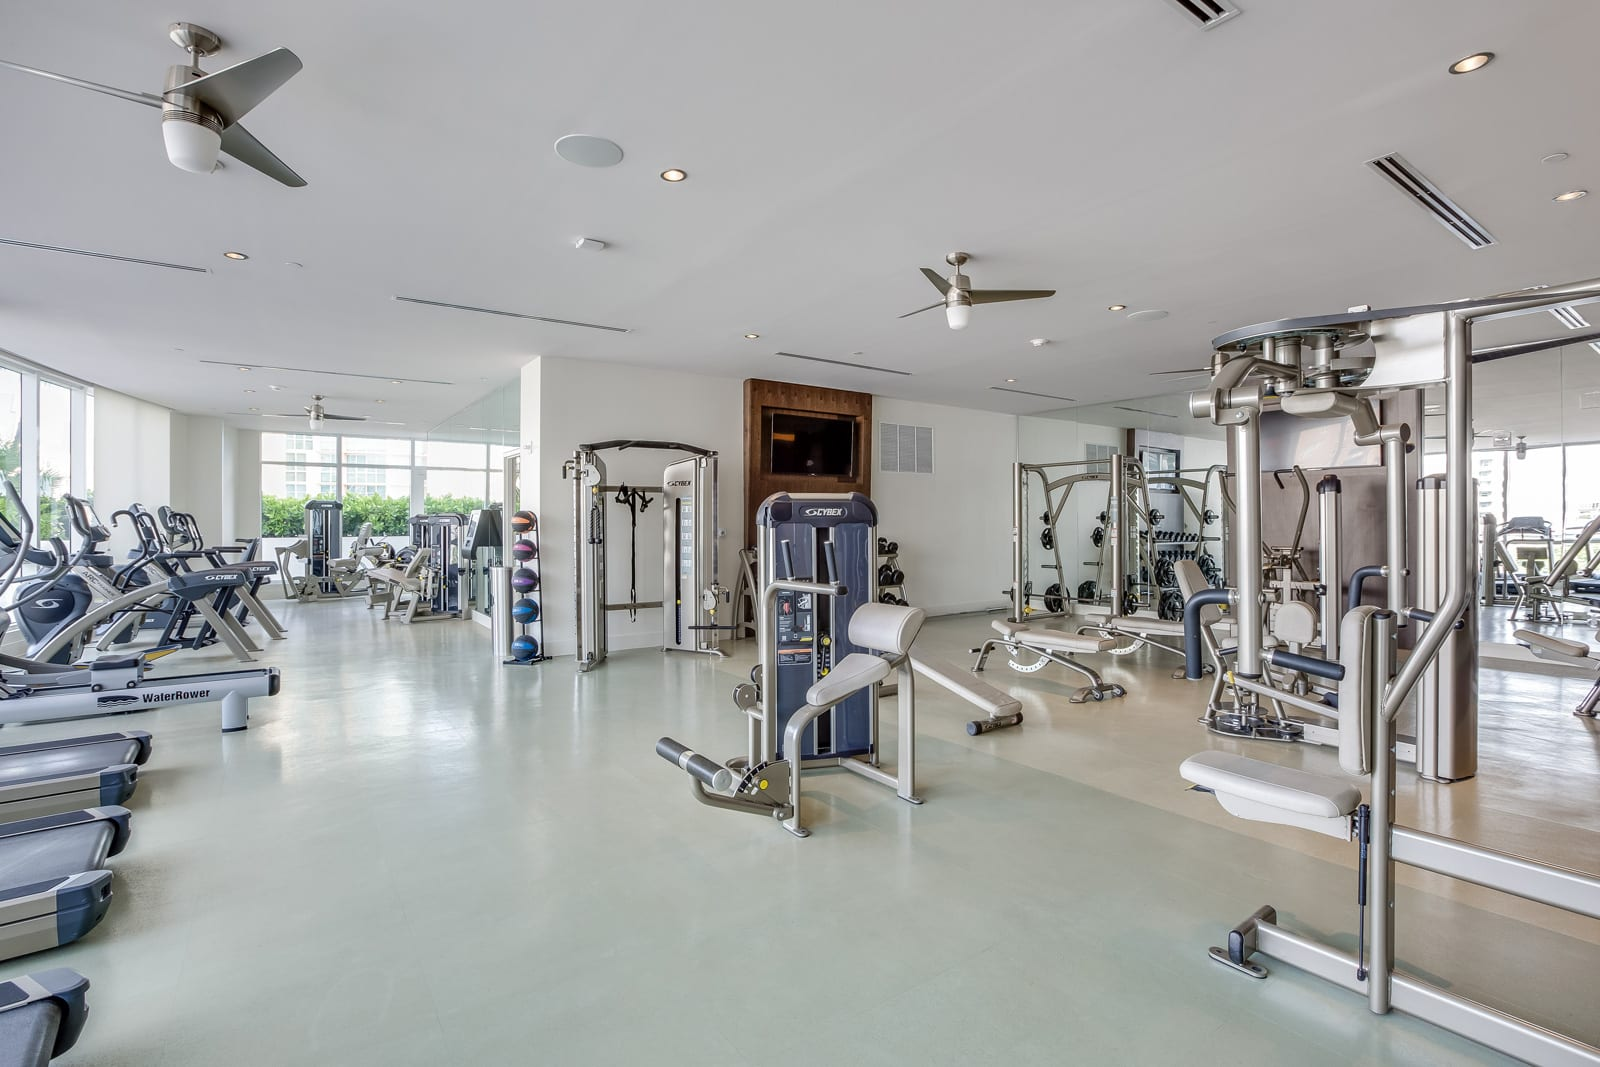 Gym with Weights and Lifting Equipment at Amaray Las Olas by Windsor, 33301, FL